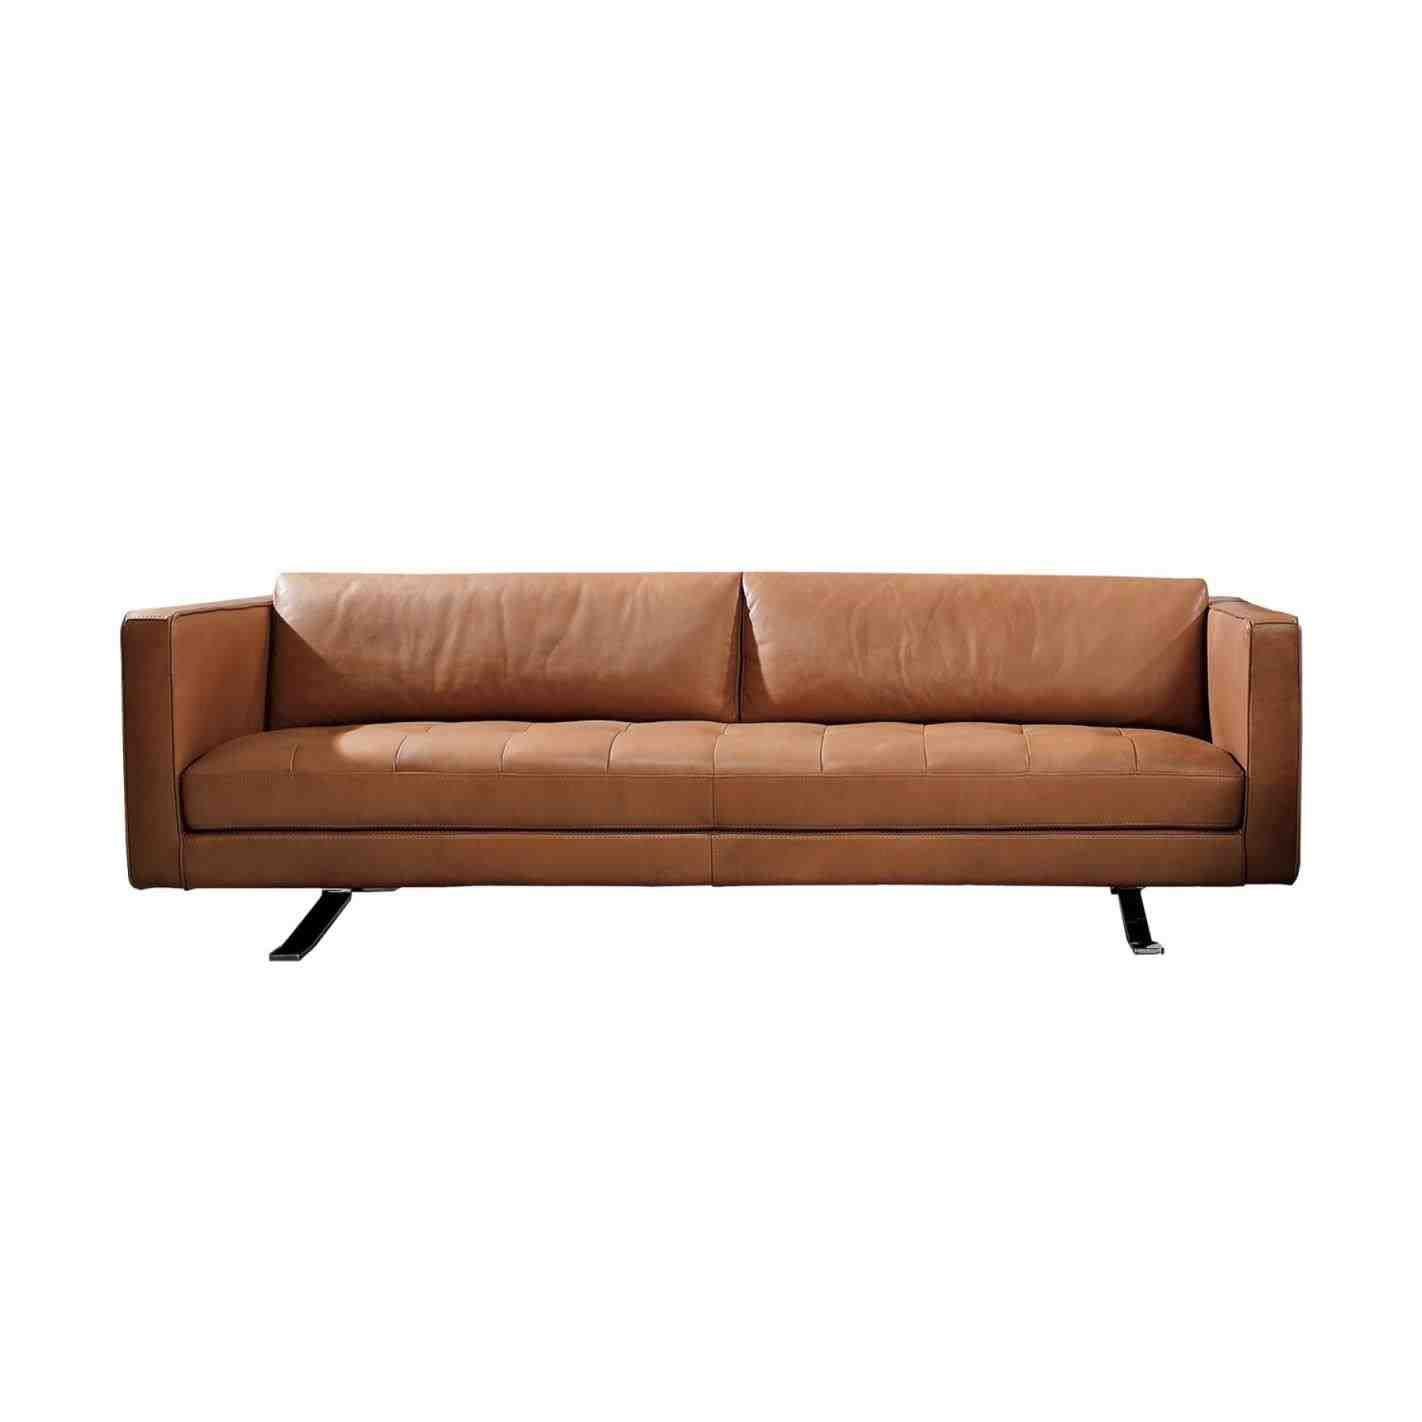 Pleasing Cheap Leather Sofas Sydney Interior Sofa Bed For Sale Machost Co Dining Chair Design Ideas Machostcouk